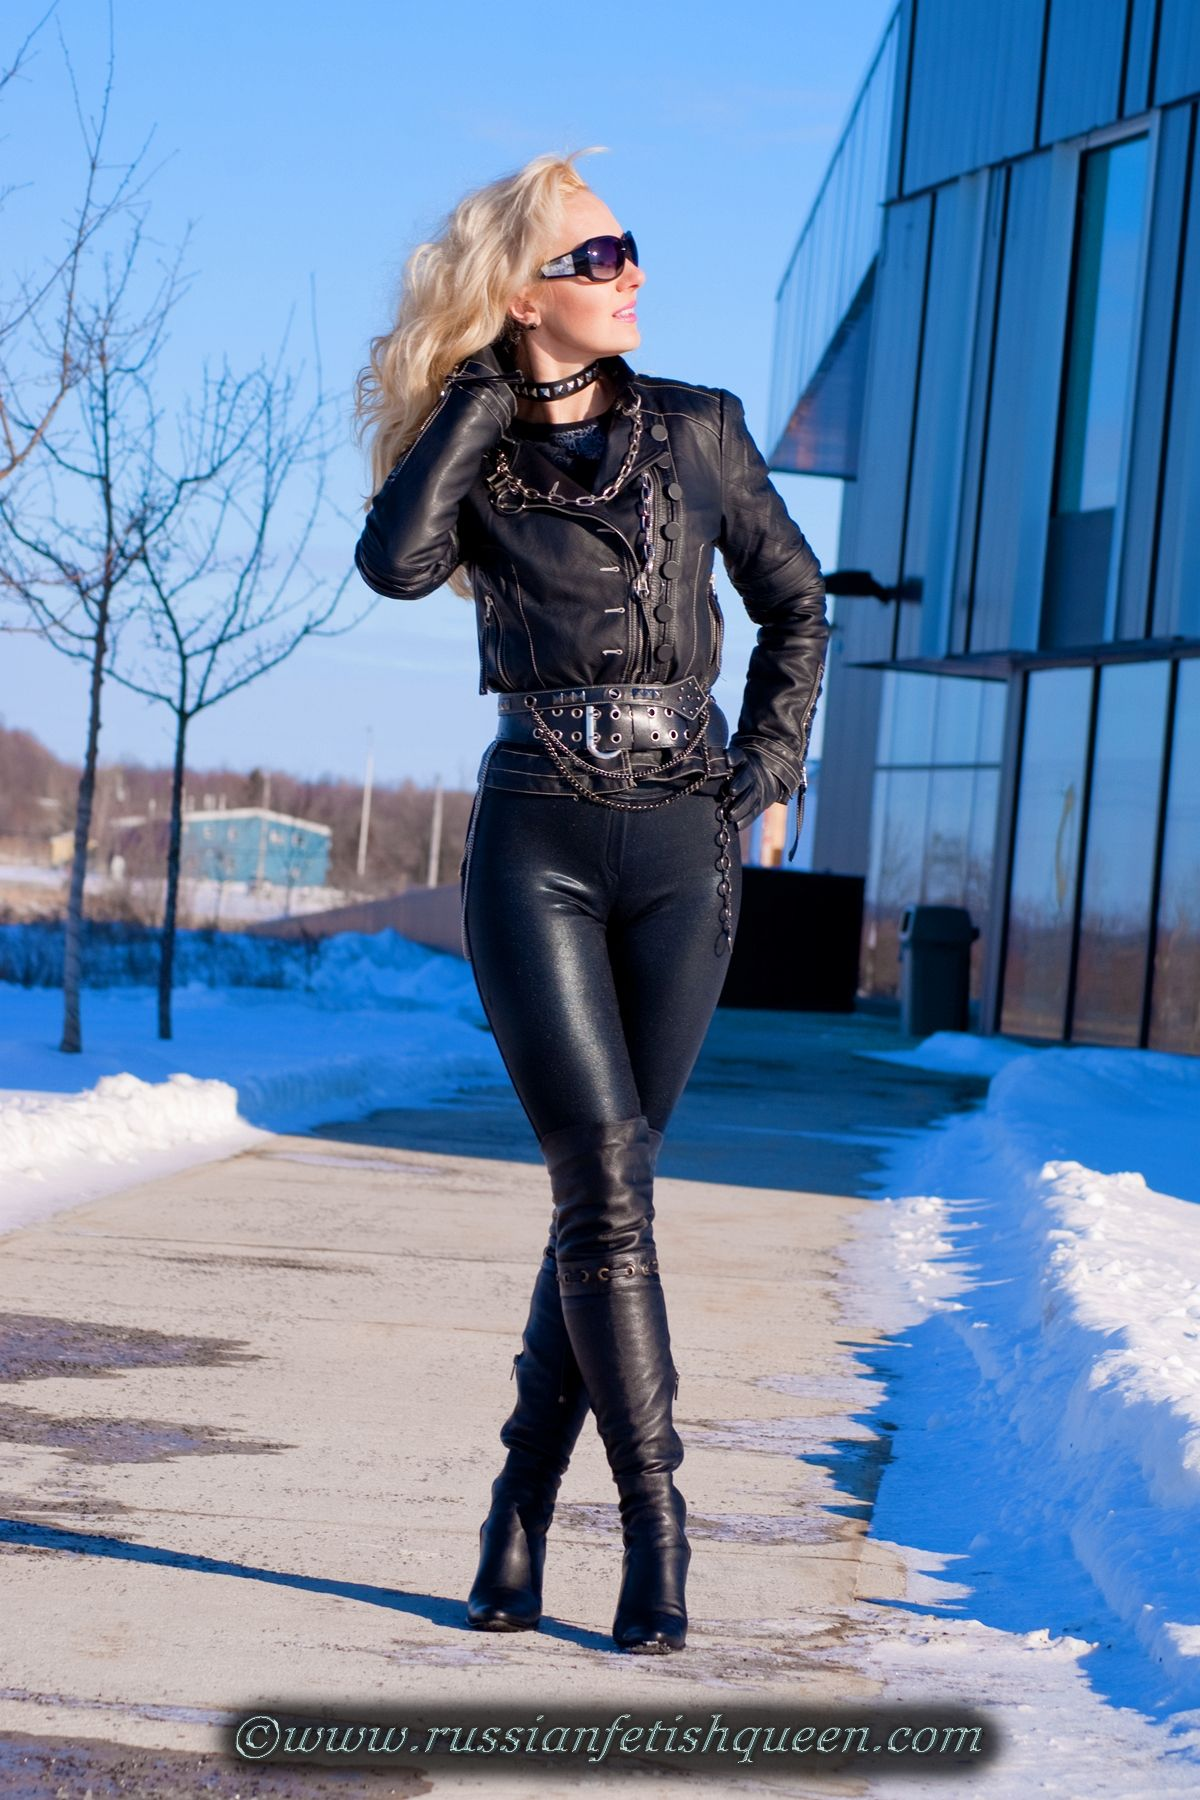 Http Rfq Russianfetishqueen Com Index Php Rfq Preview Photos Image View Image Format Raw Type Orig Id Leather Pants Women Leather Boots Outfit Leather Outfit